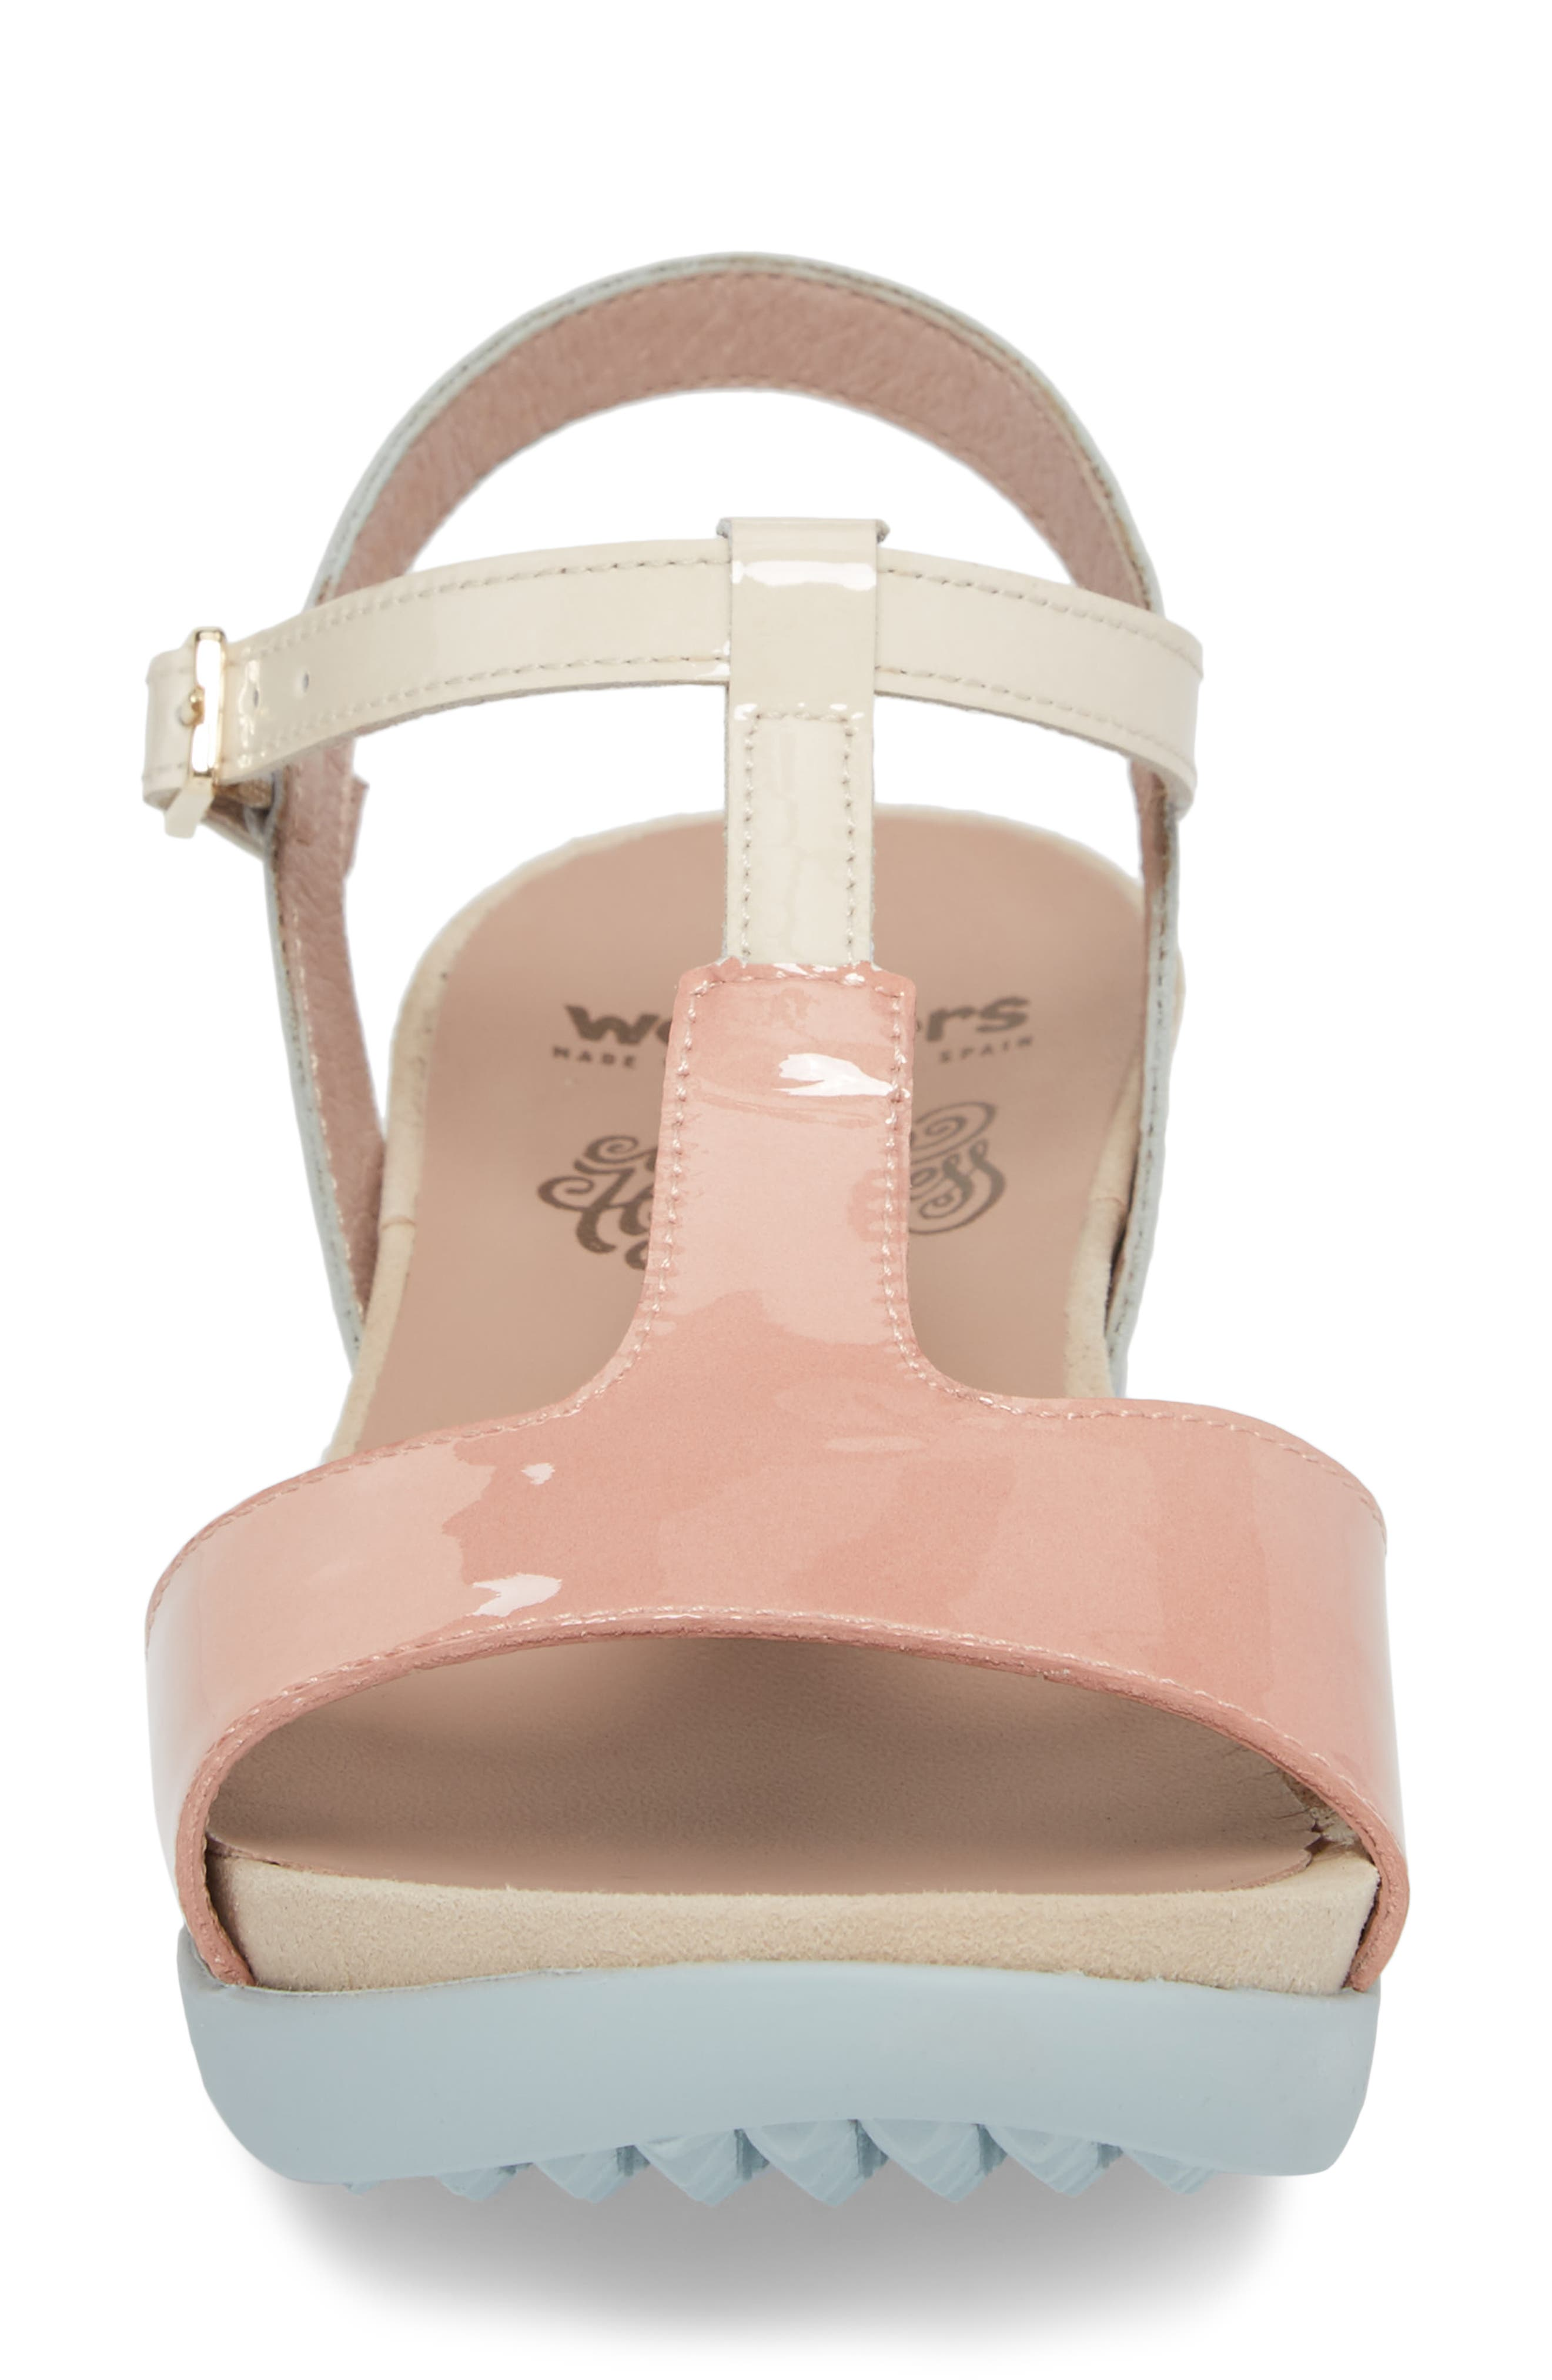 Wedge Sandal,                             Alternate thumbnail 4, color,                             Nude/ Off/ Light Grey Leather